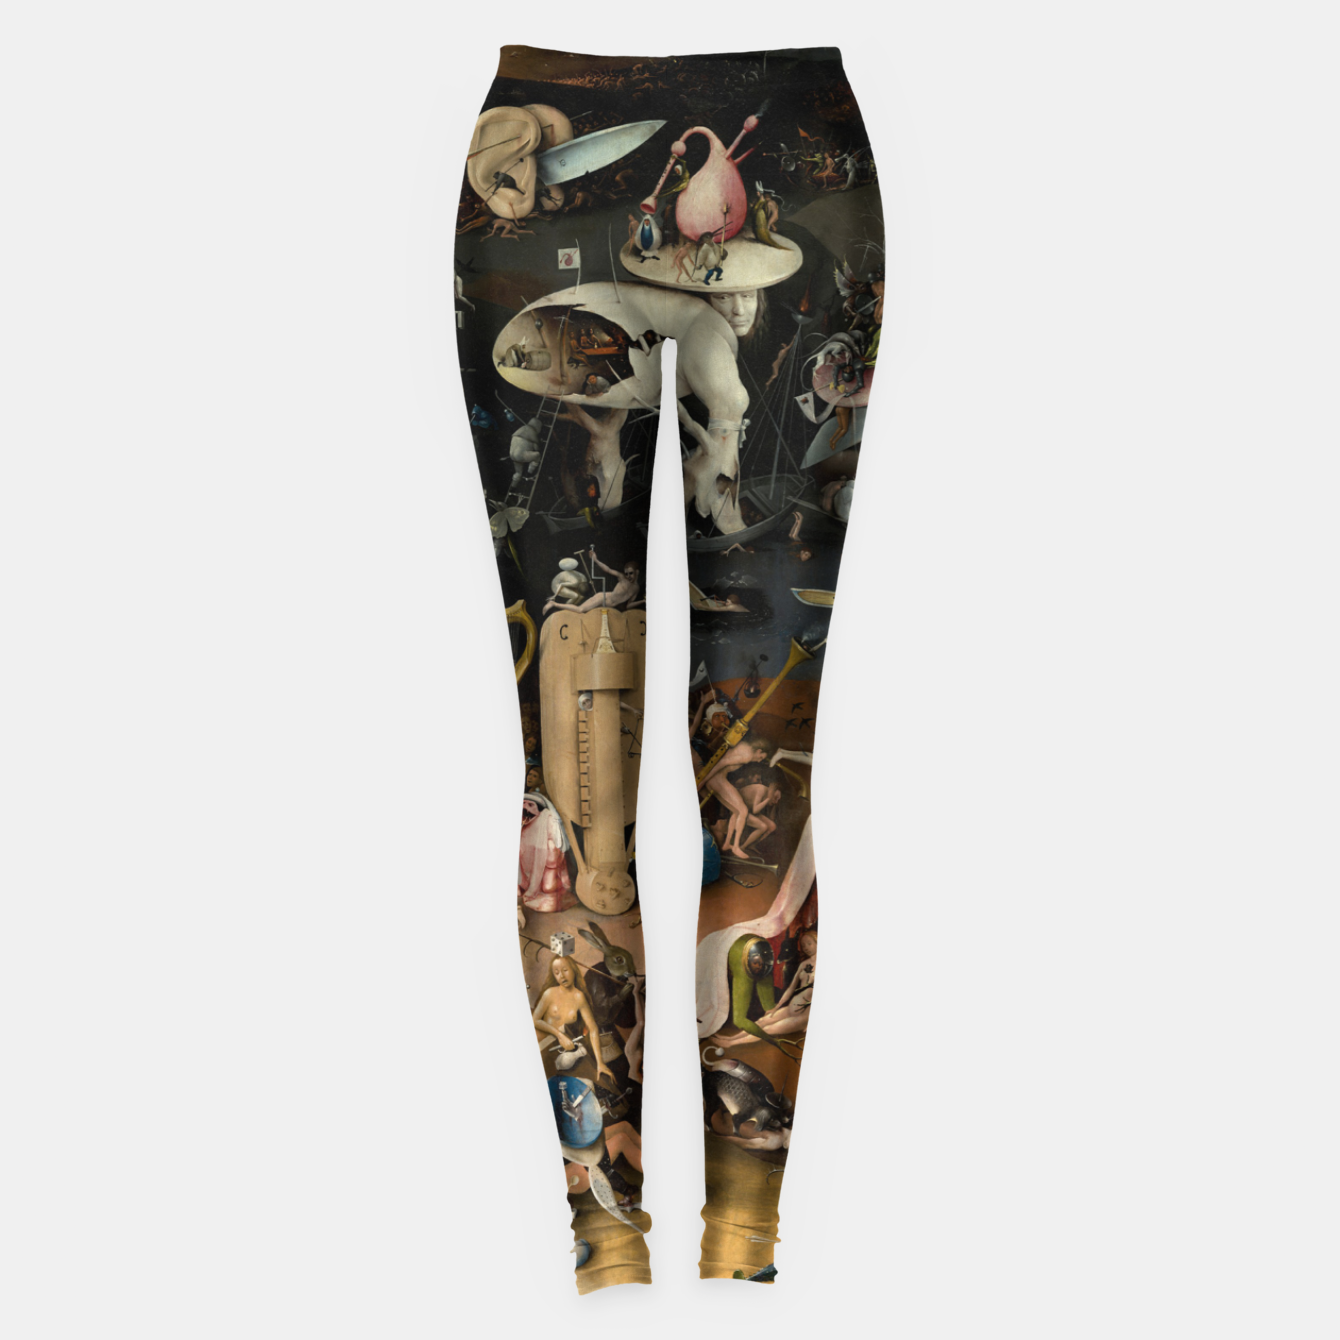 Foto Fashion and decor items from Hieronymus Bosch painting of Hell from the triptych Garden of Earthly Delights Leggings - Live Heroes